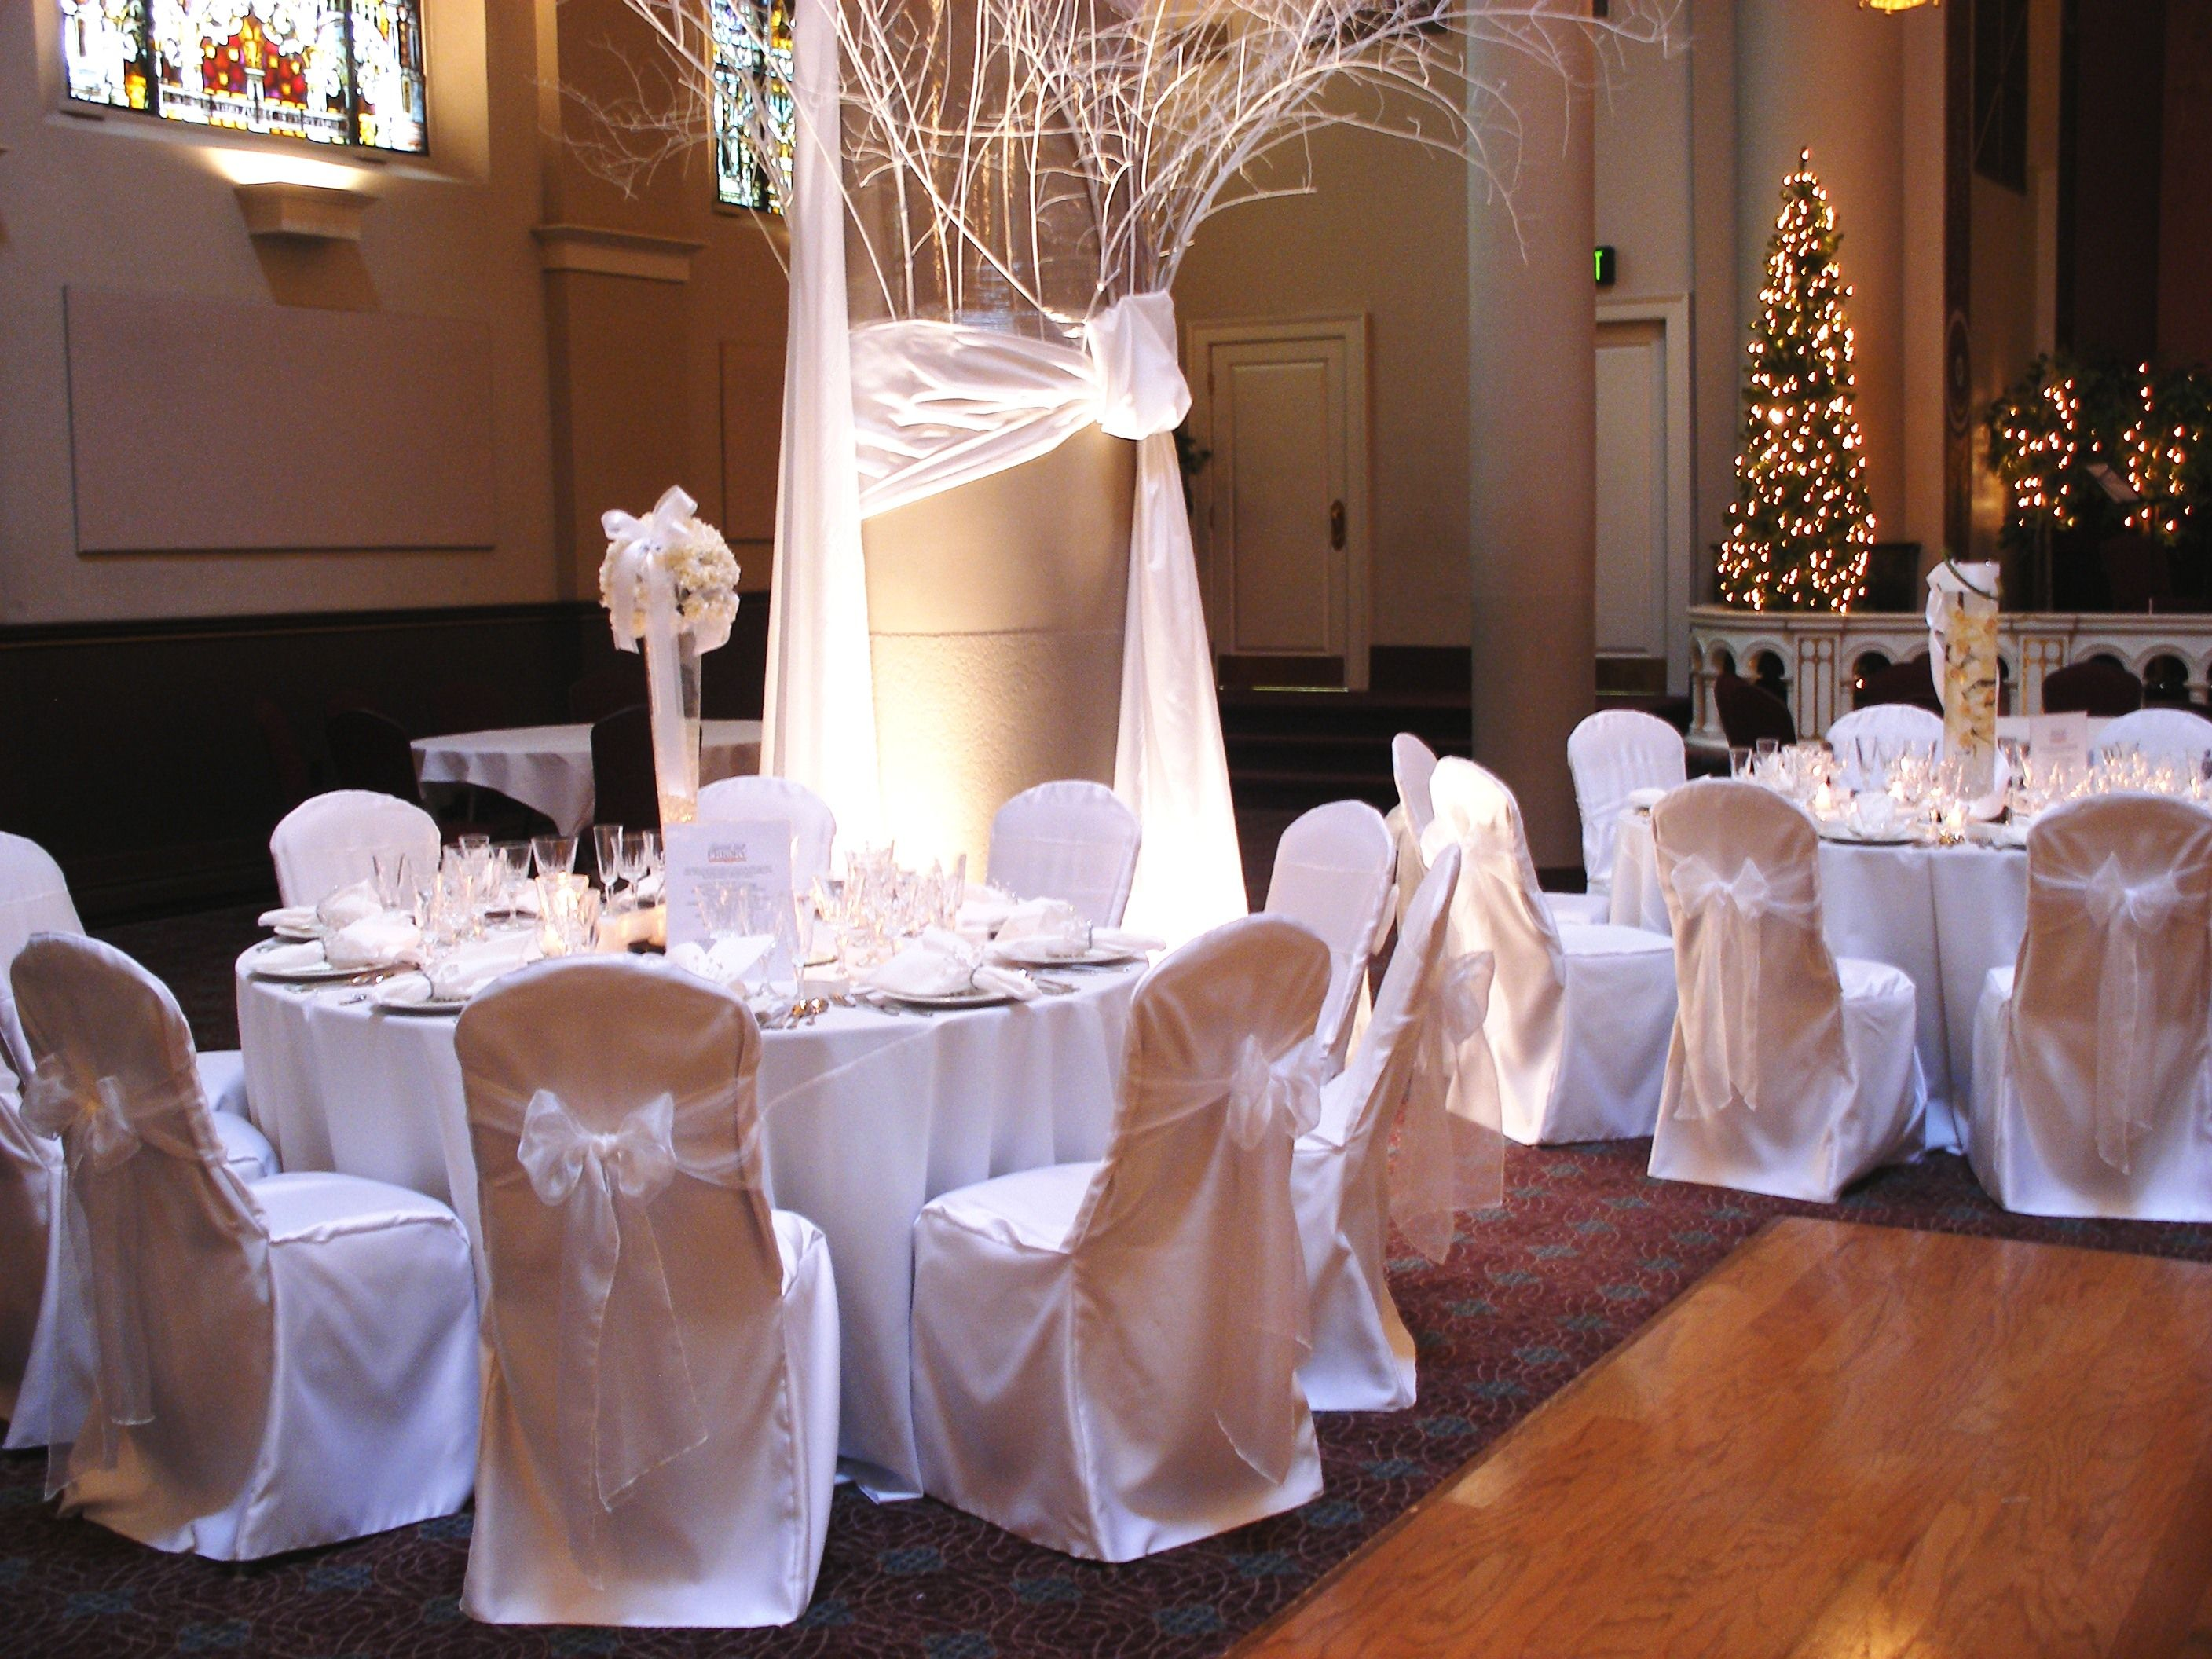 Simple Winter Theme Chair Covers Wedding Reception Wedding Reception Chairs Chair Covers Wedding